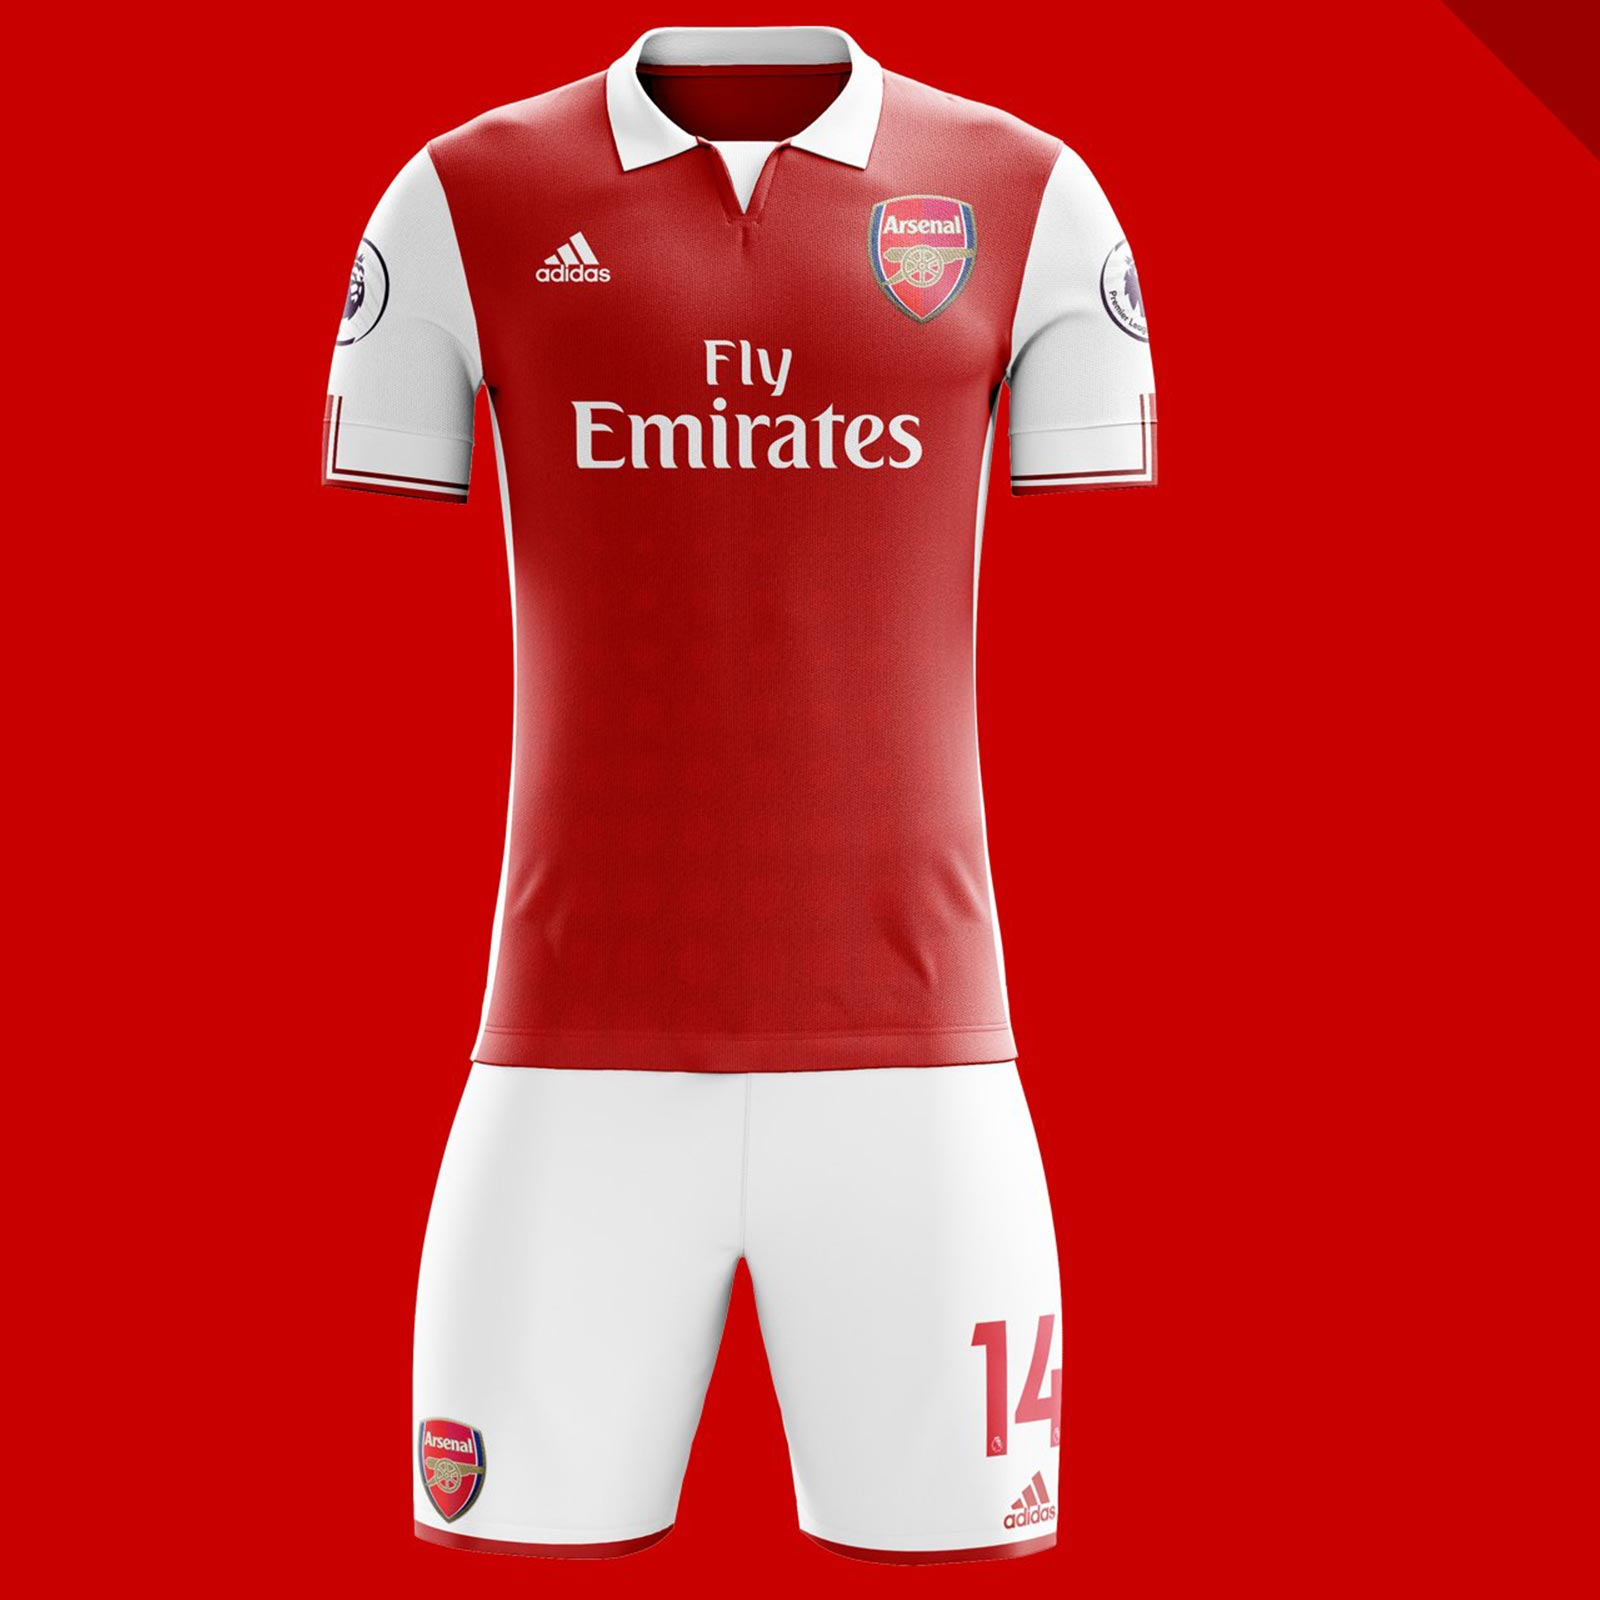 7928052ca0d We Think You Should See Arsenal's Concept Kits for 2019/20